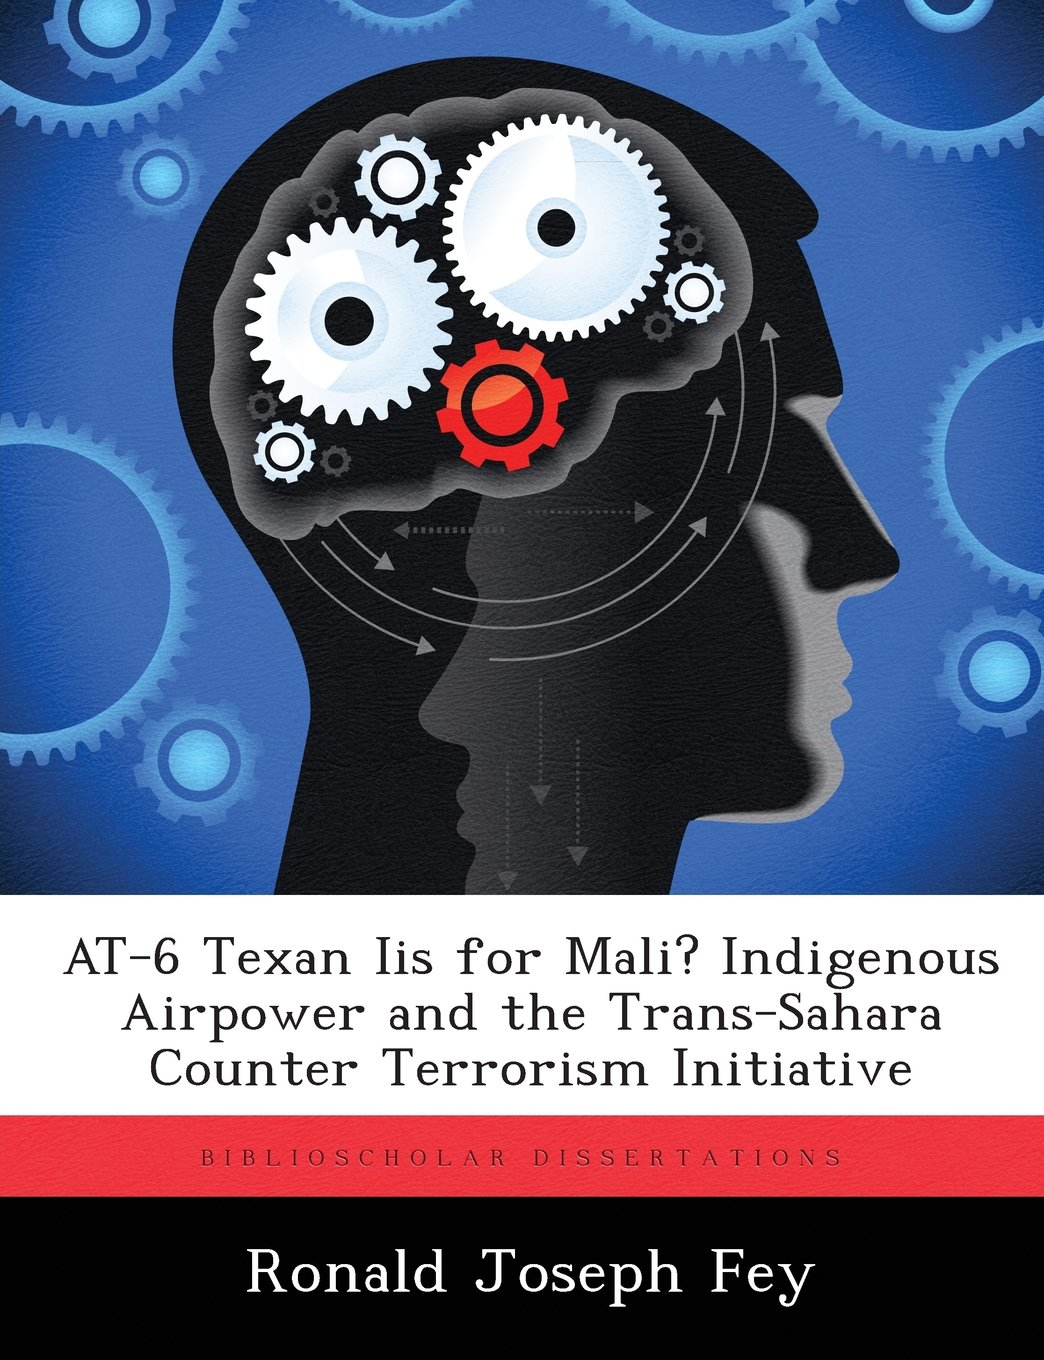 AT-6 Texan Iis for Mali? Indigenous Airpower and the Trans-Sahara Counter Terrorism Initiative PDF